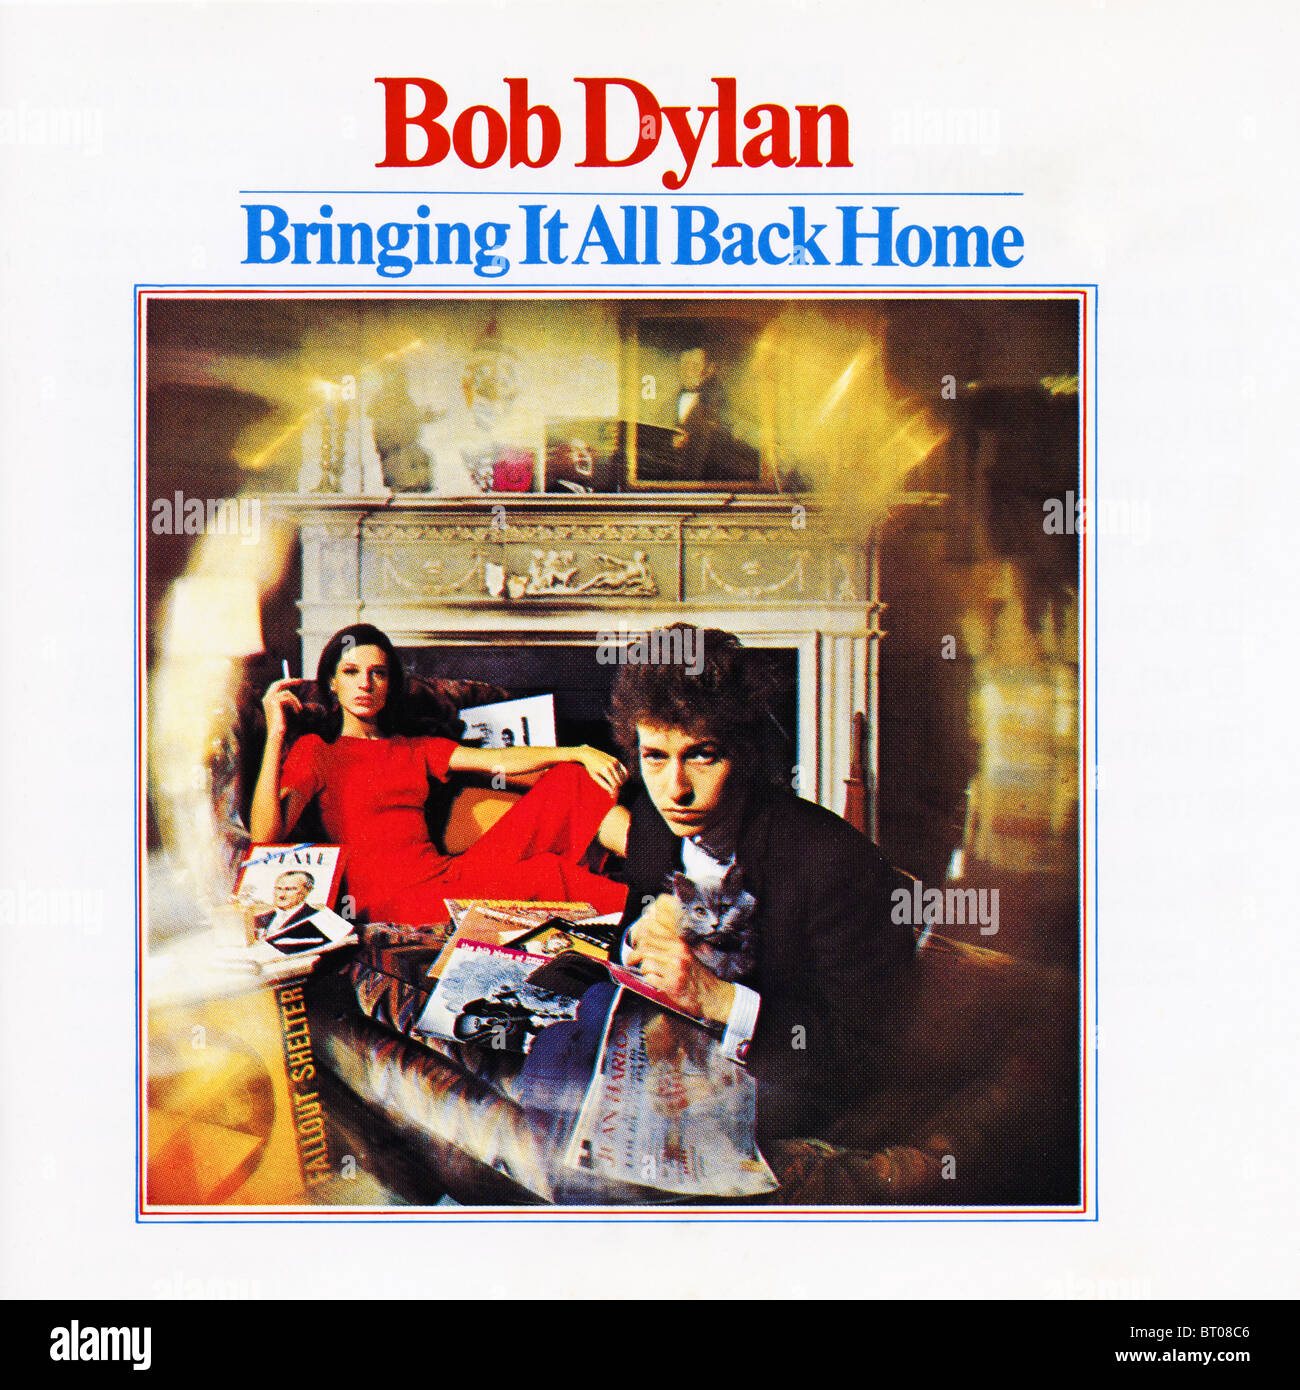 Home All: Album Cover Of Bringing It All Back Home By Bob Dylan